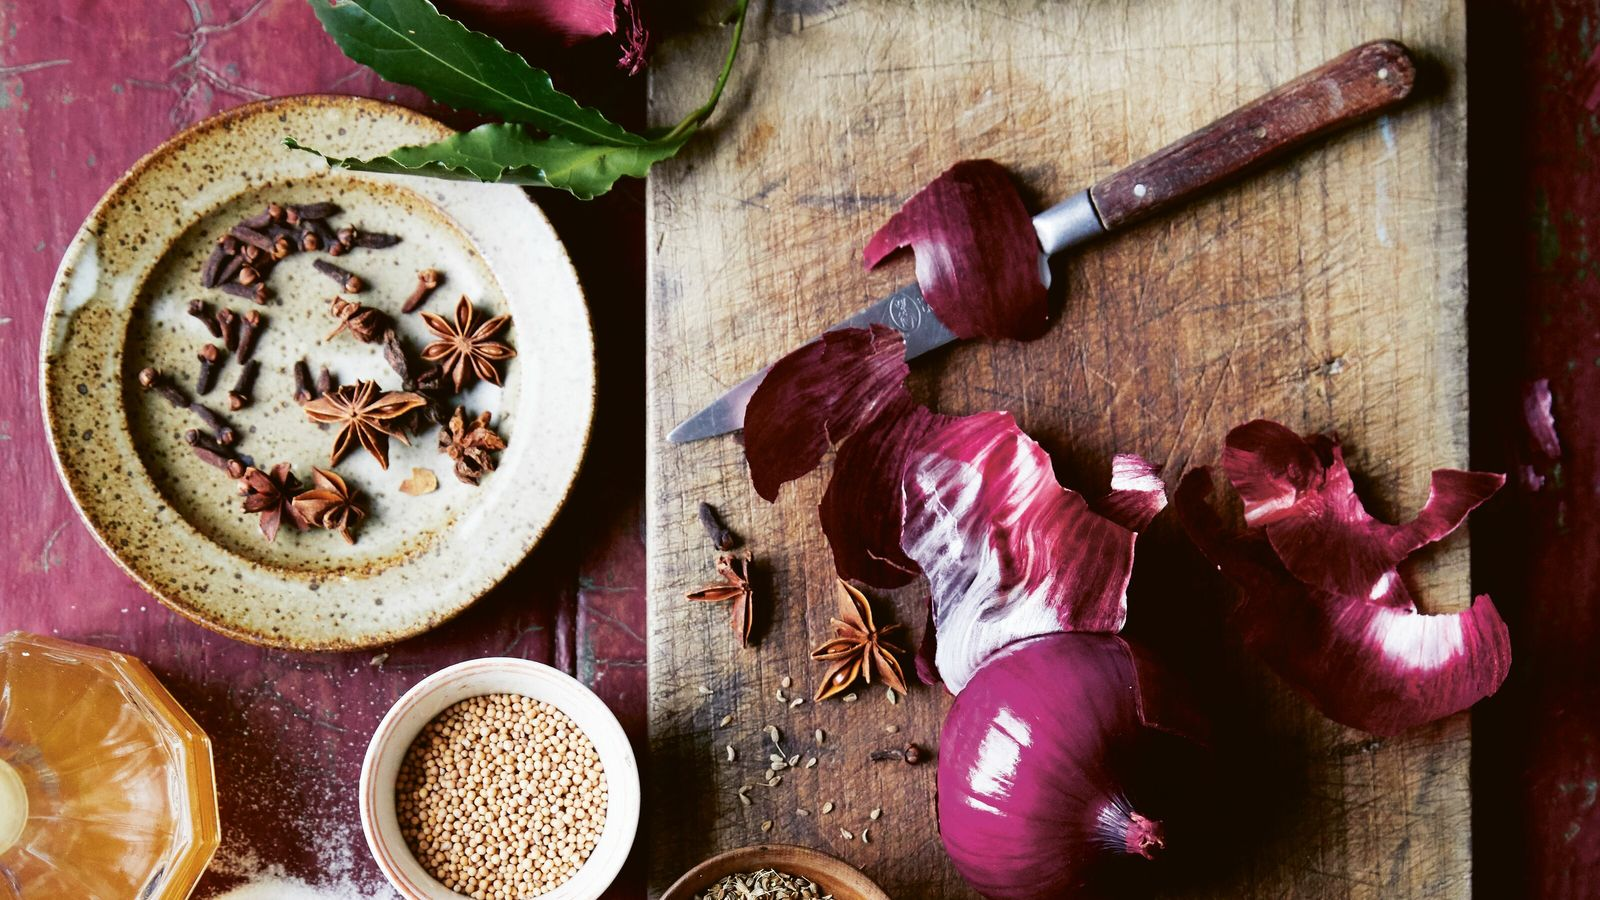 Caroline Eden discovers food through the lens of a travel writer, using recipes to help tell a story.